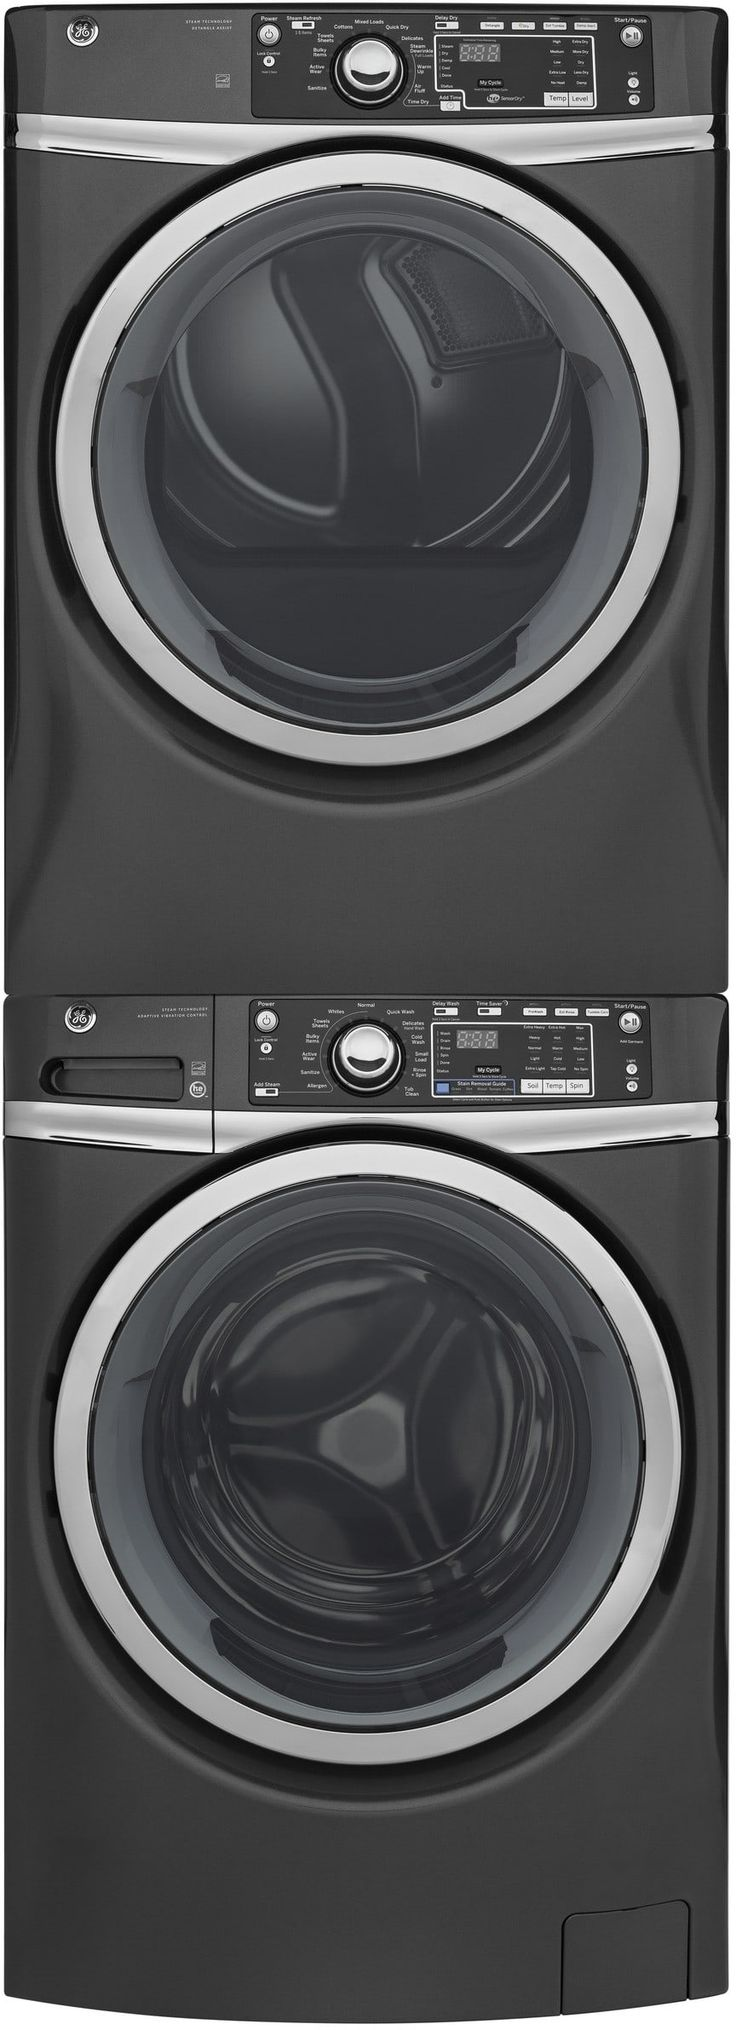 GE GEWADRGG3 Stacked Washer & Dryer Set with Front Load Washer and Gas Dryer in Diamond Gray